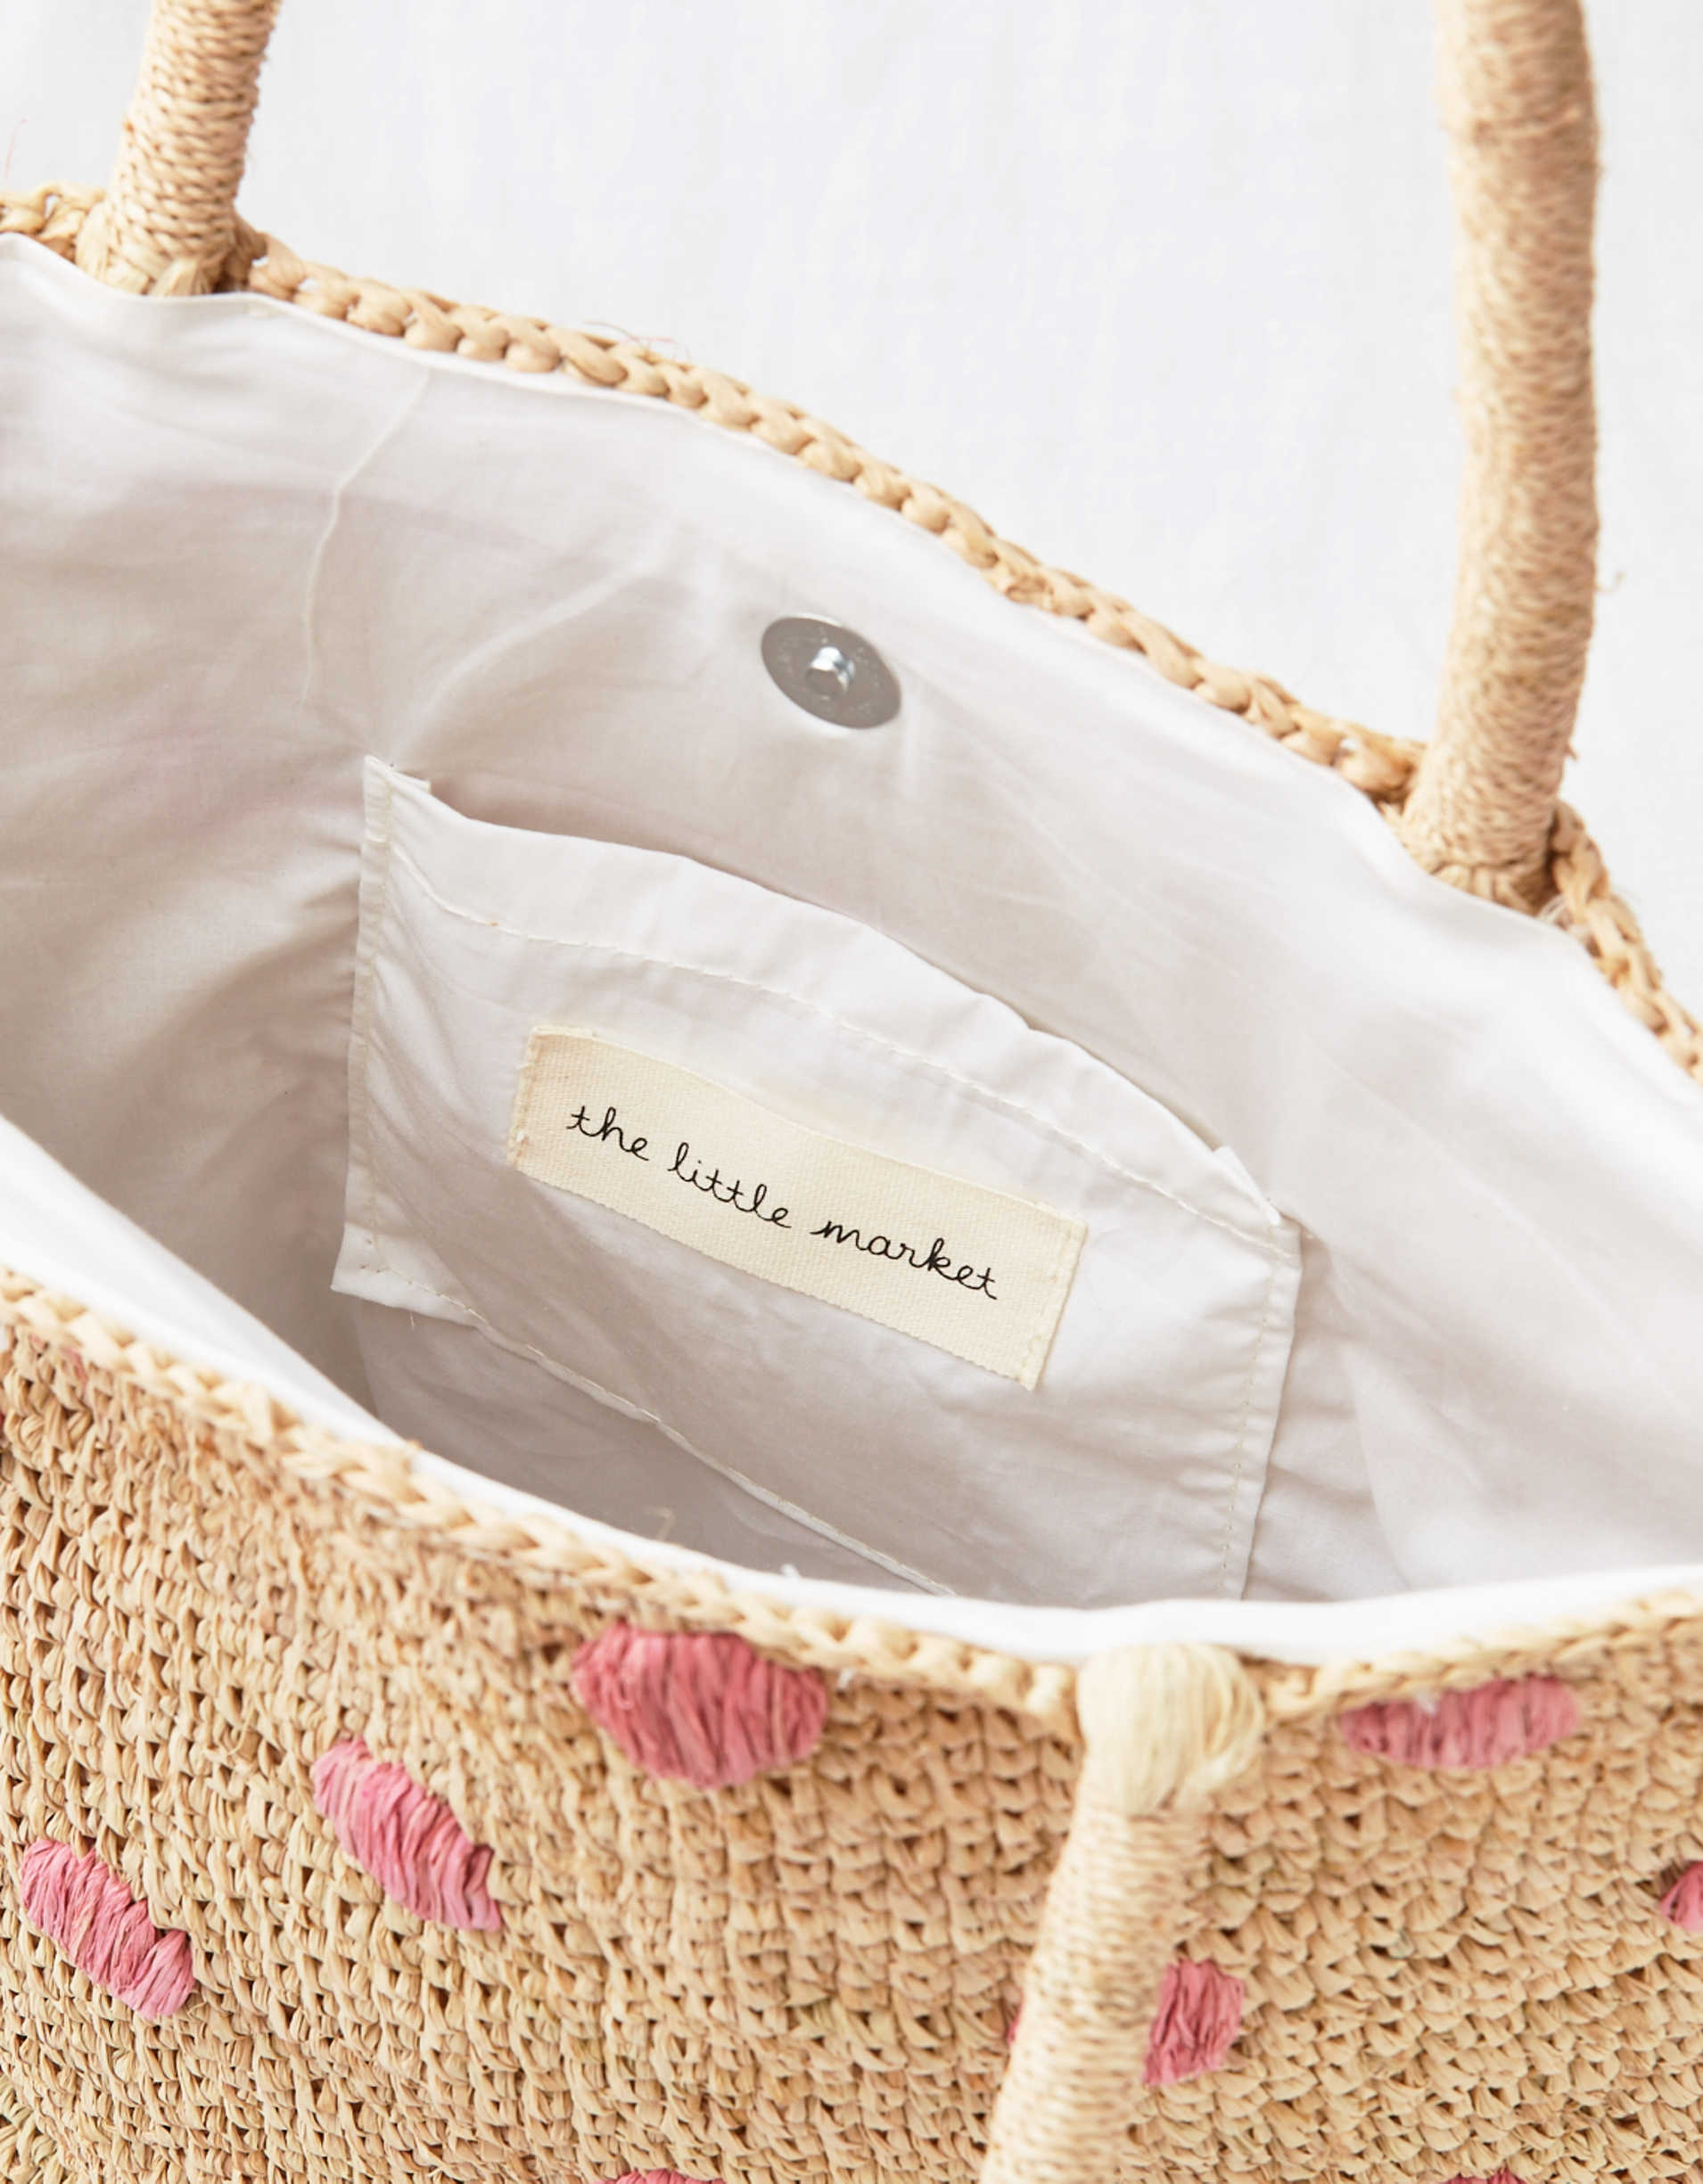 The Little Market Polka Dot Tote